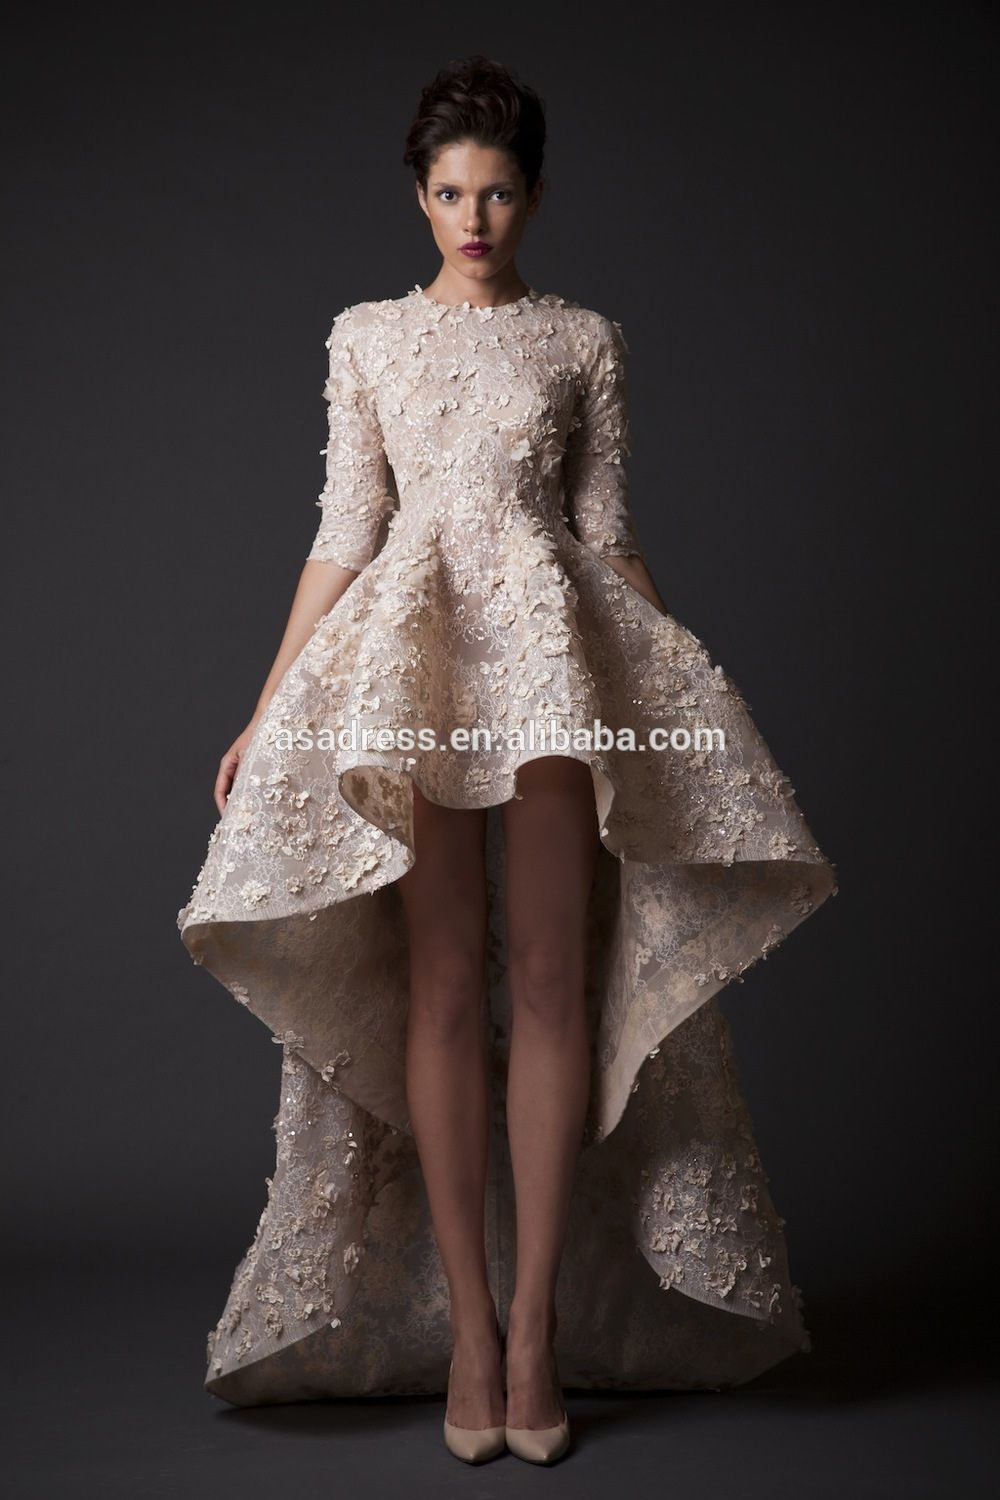 Pin by jooana on wedding ideas for you pinterest dresses